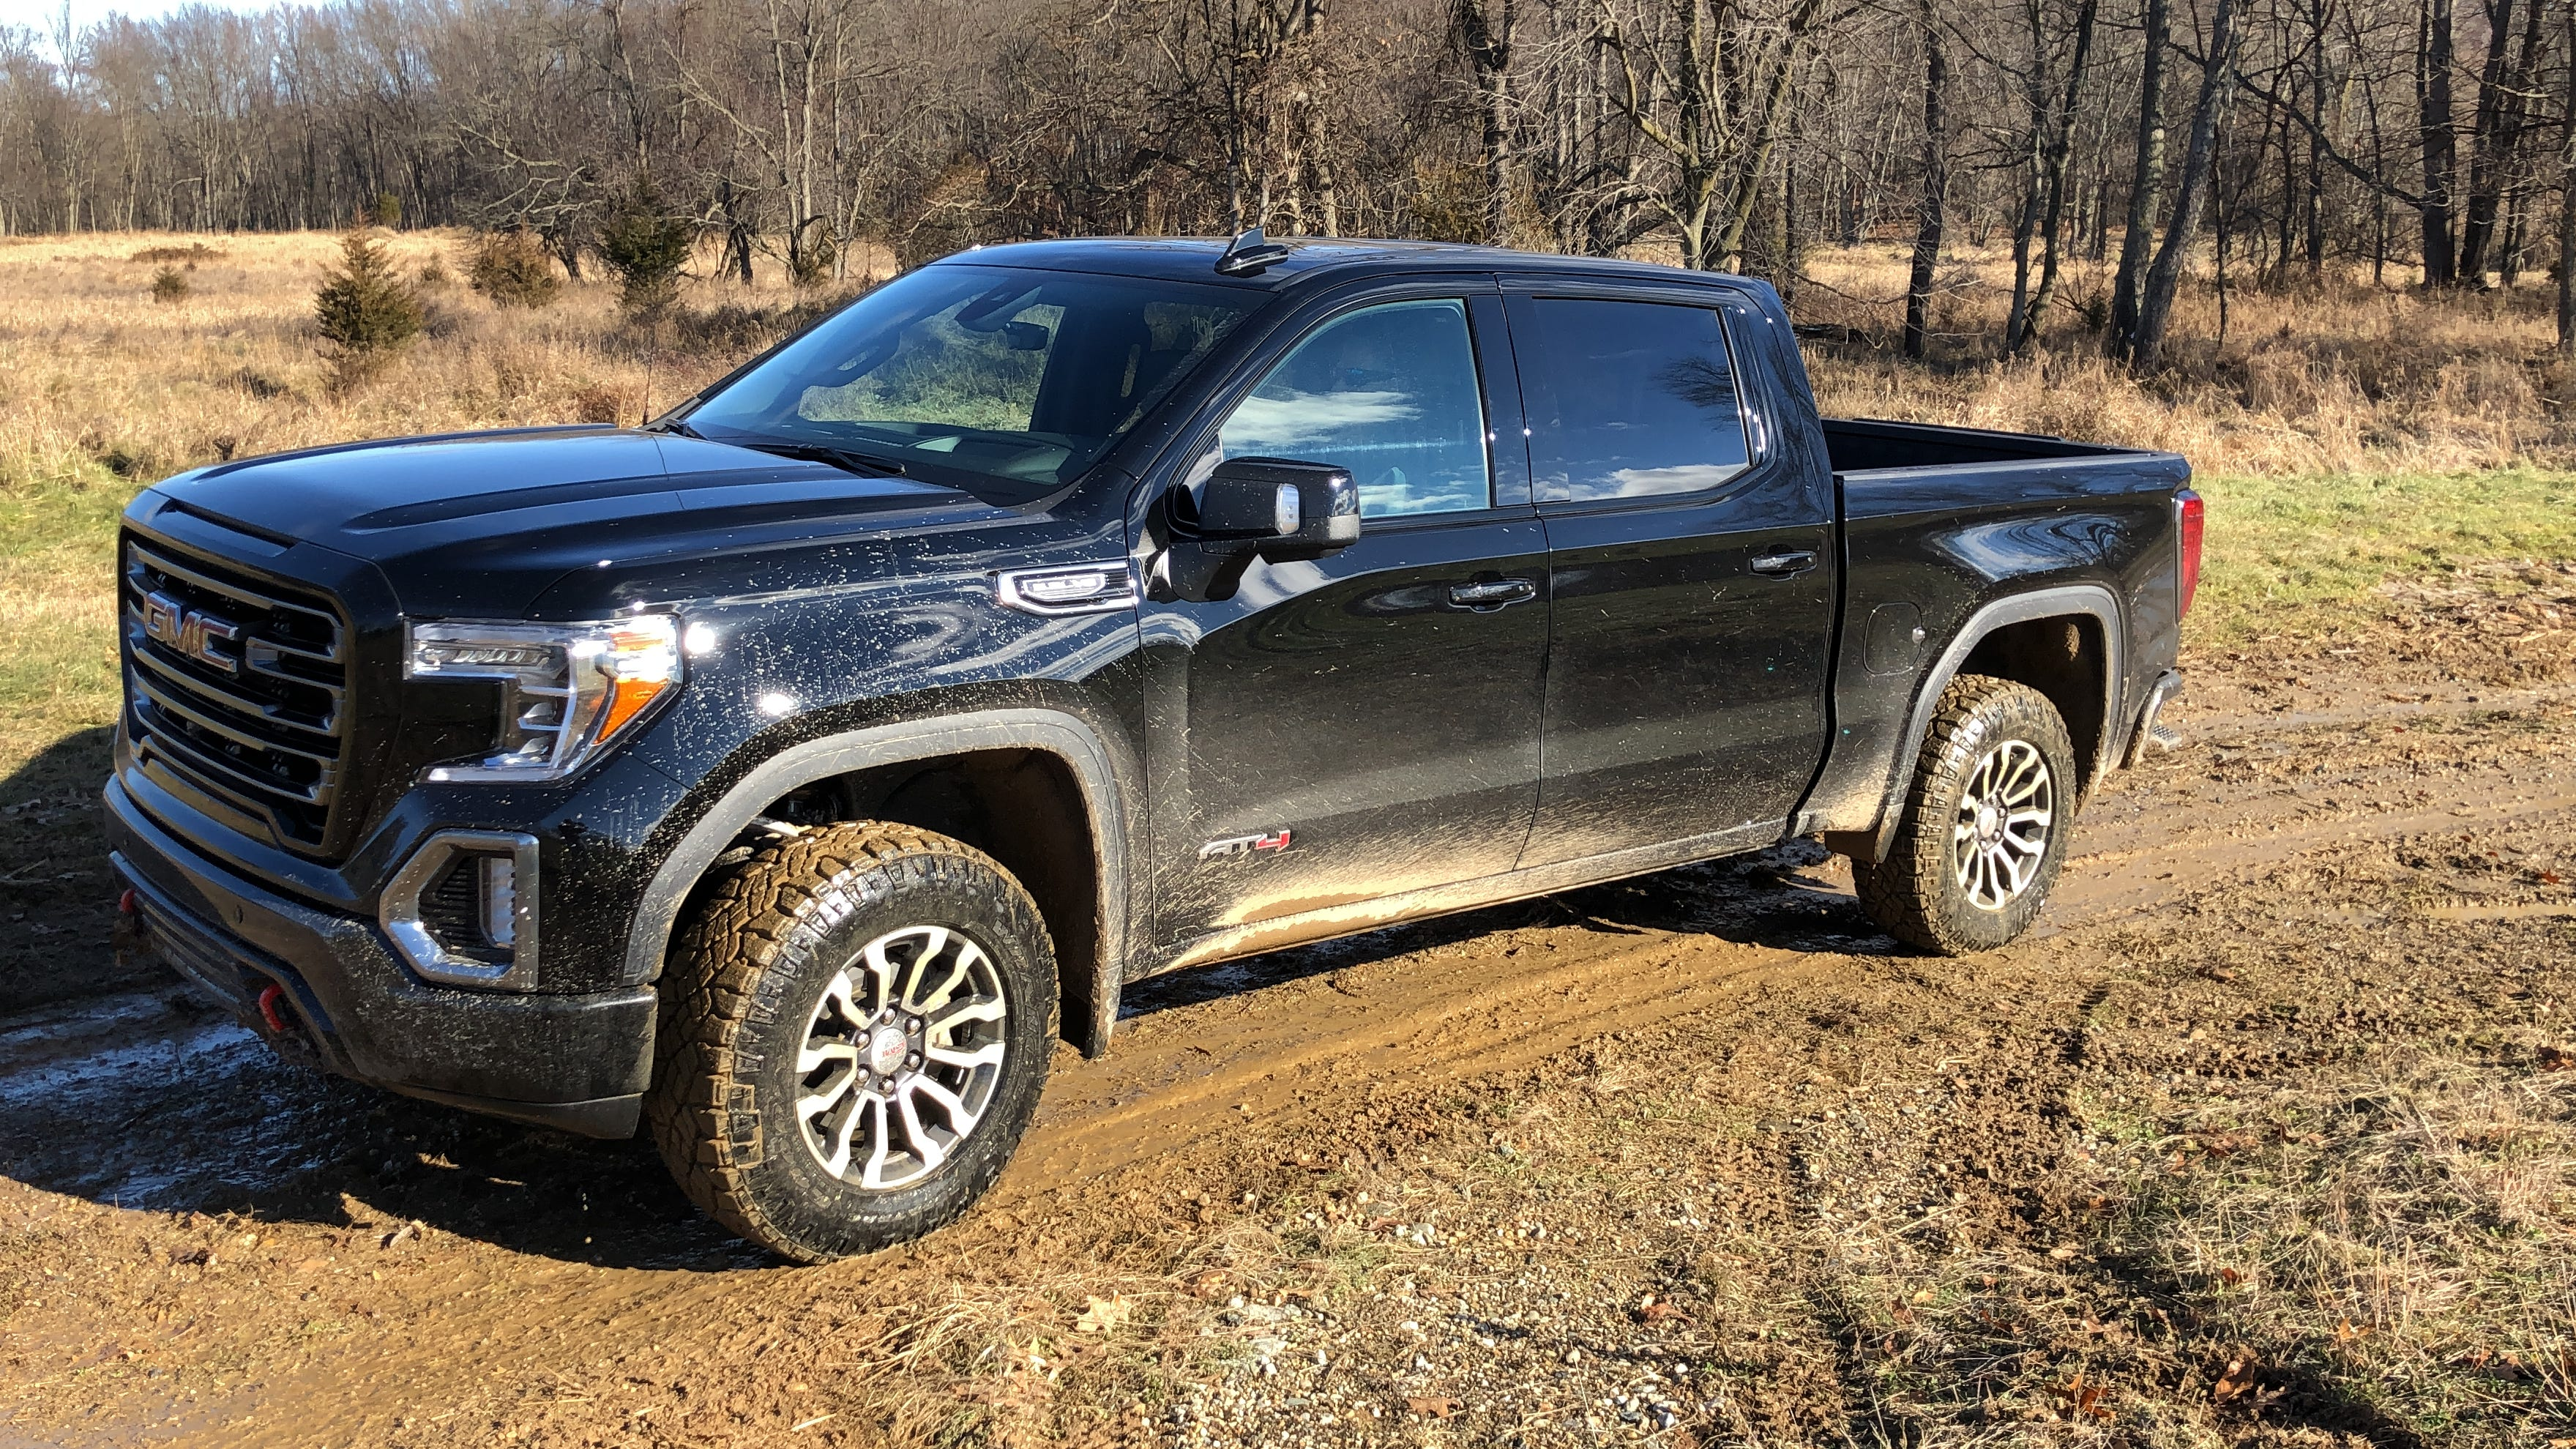 2019 Sierra AT4 pickup takes GMC's upscale image off road